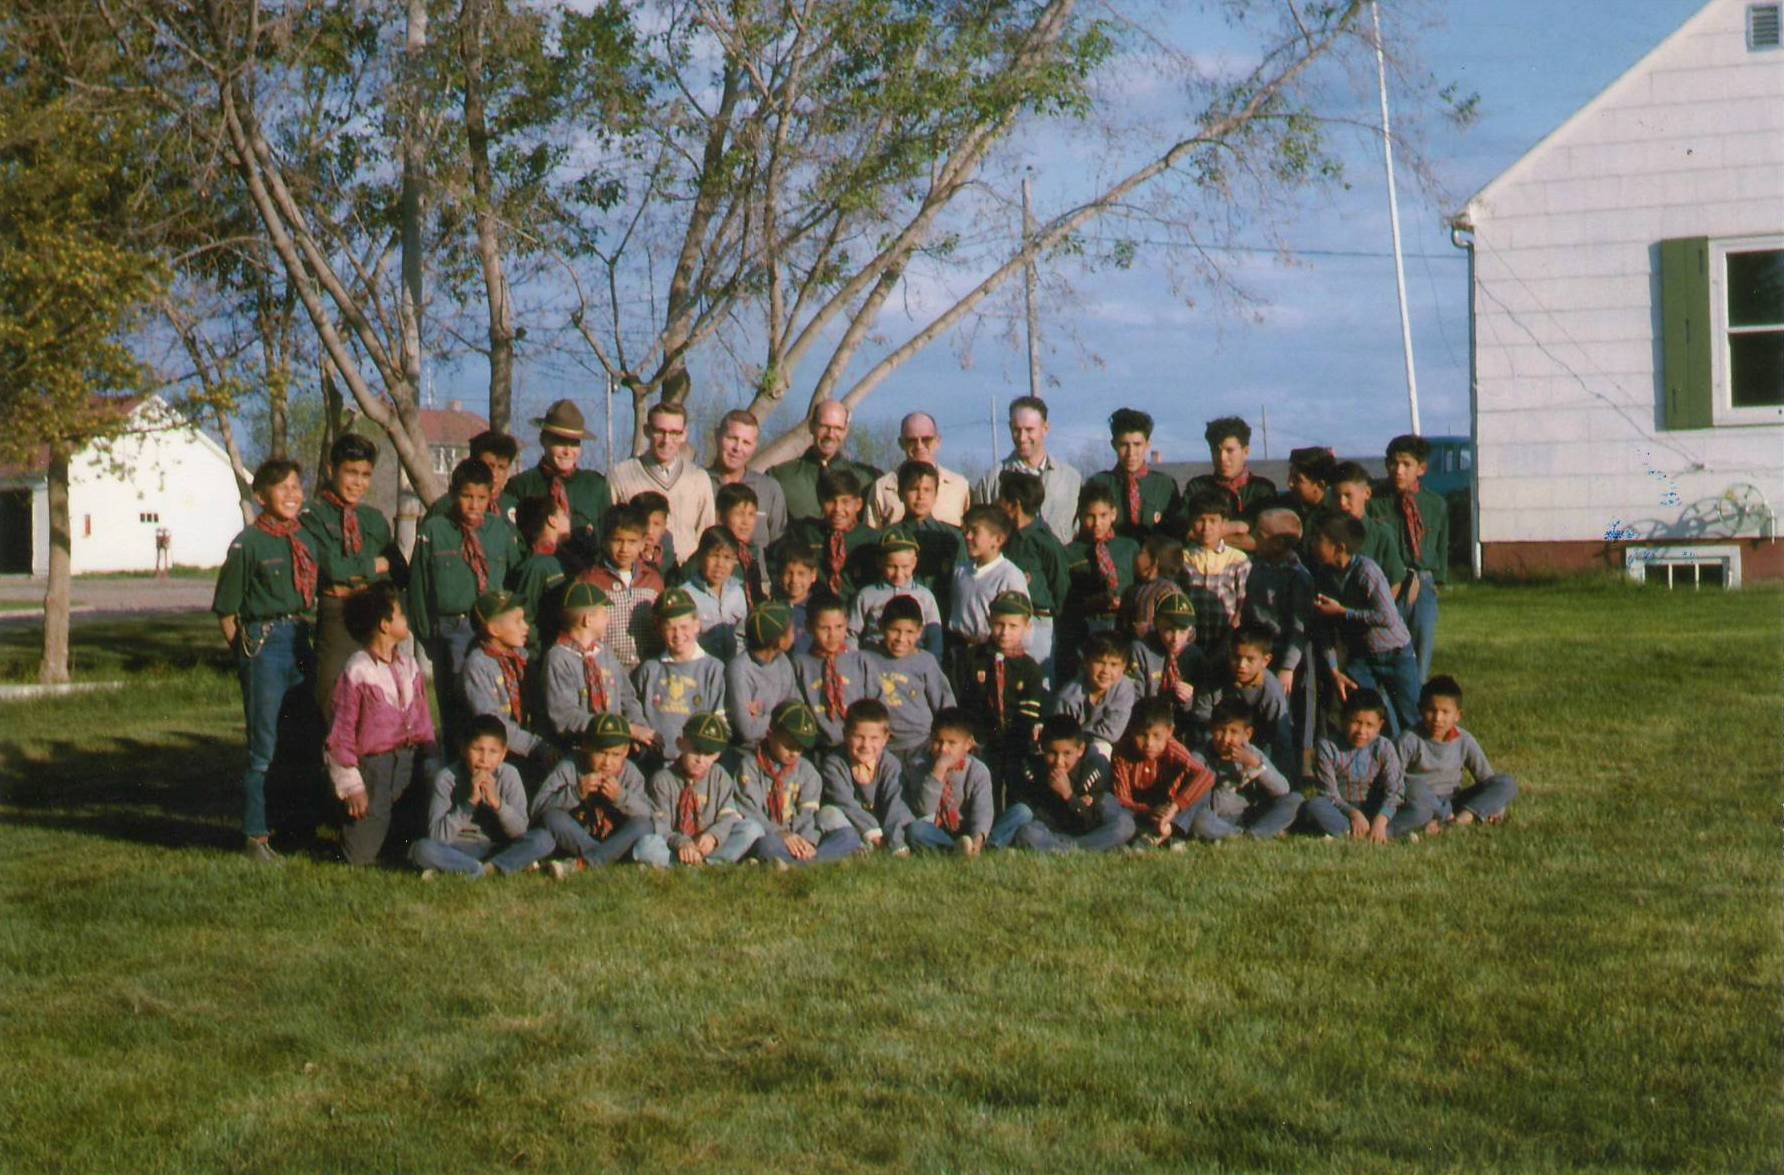 Boy Scouts and leaders. Photo Credit: